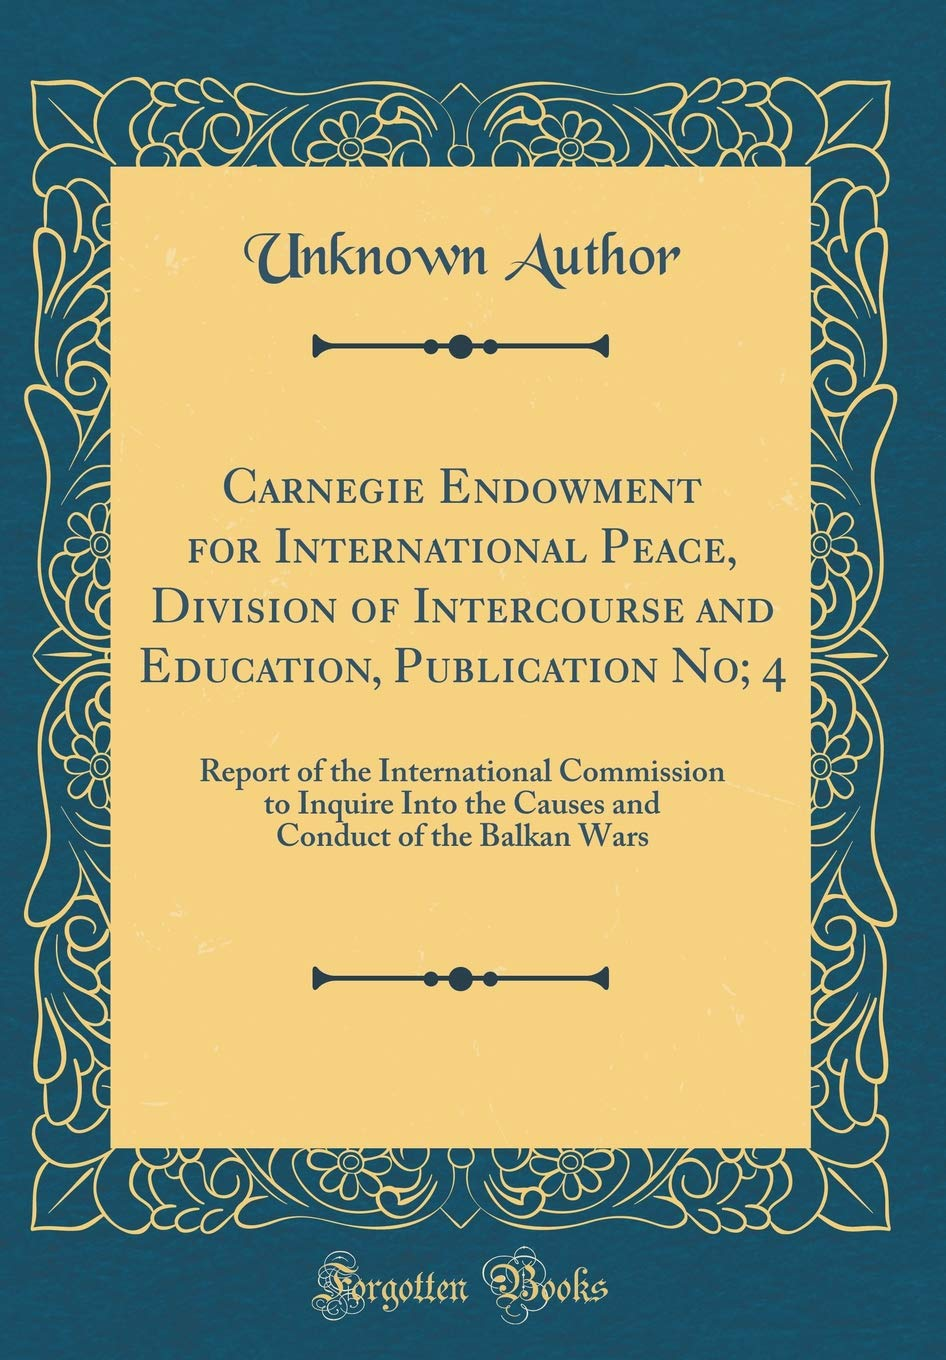 Read Online Carnegie Endowment for International Peace, Division of Intercourse and Education, Publication No; 4: Report of the International Commission to ... Conduct of the Balkan Wars (Classic Reprint) PDF